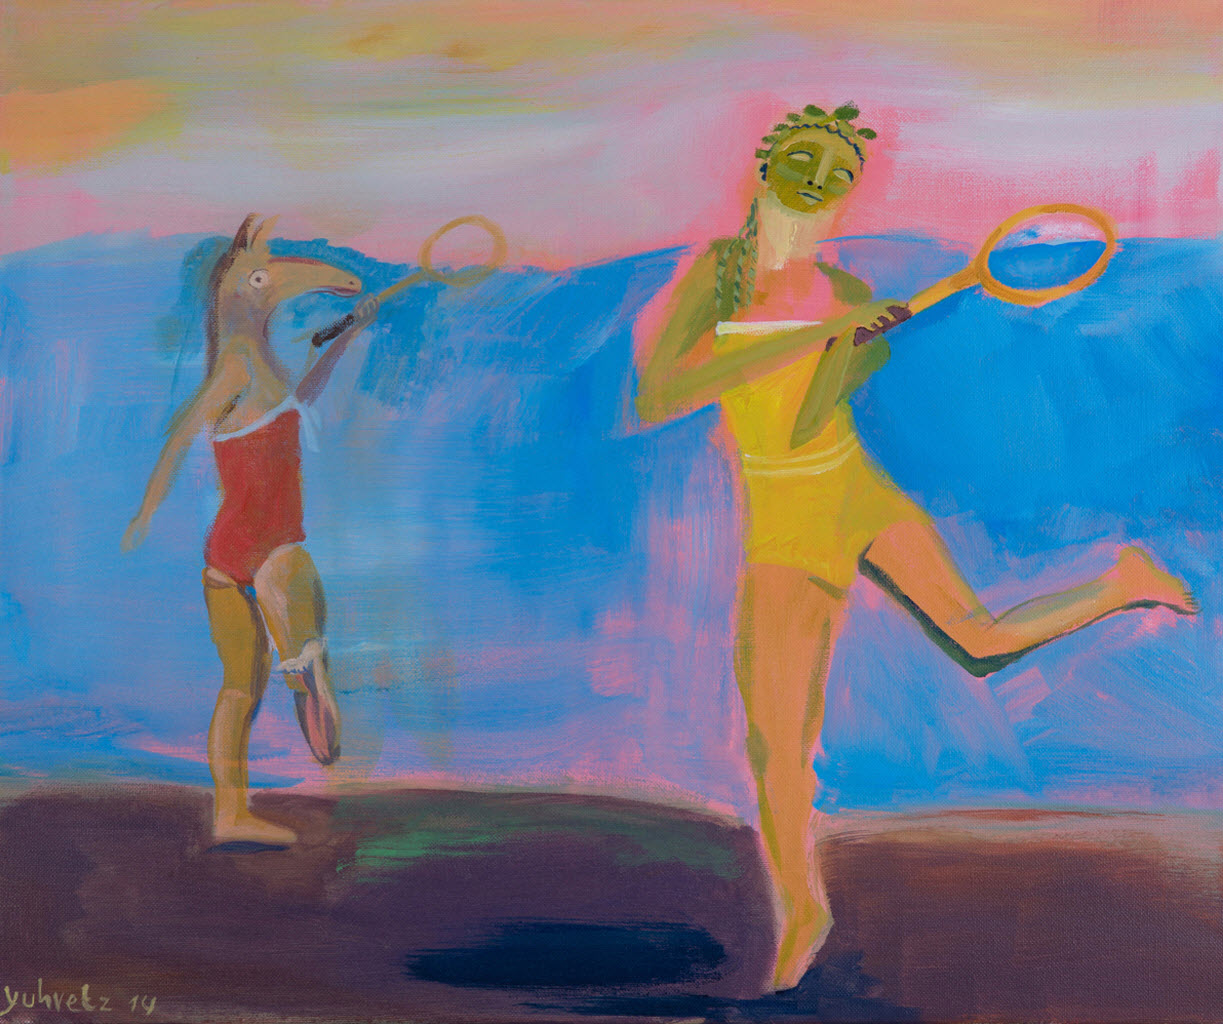 Playing In The Dead Sea | Acrylic on canvas / 60x50cm / 2014